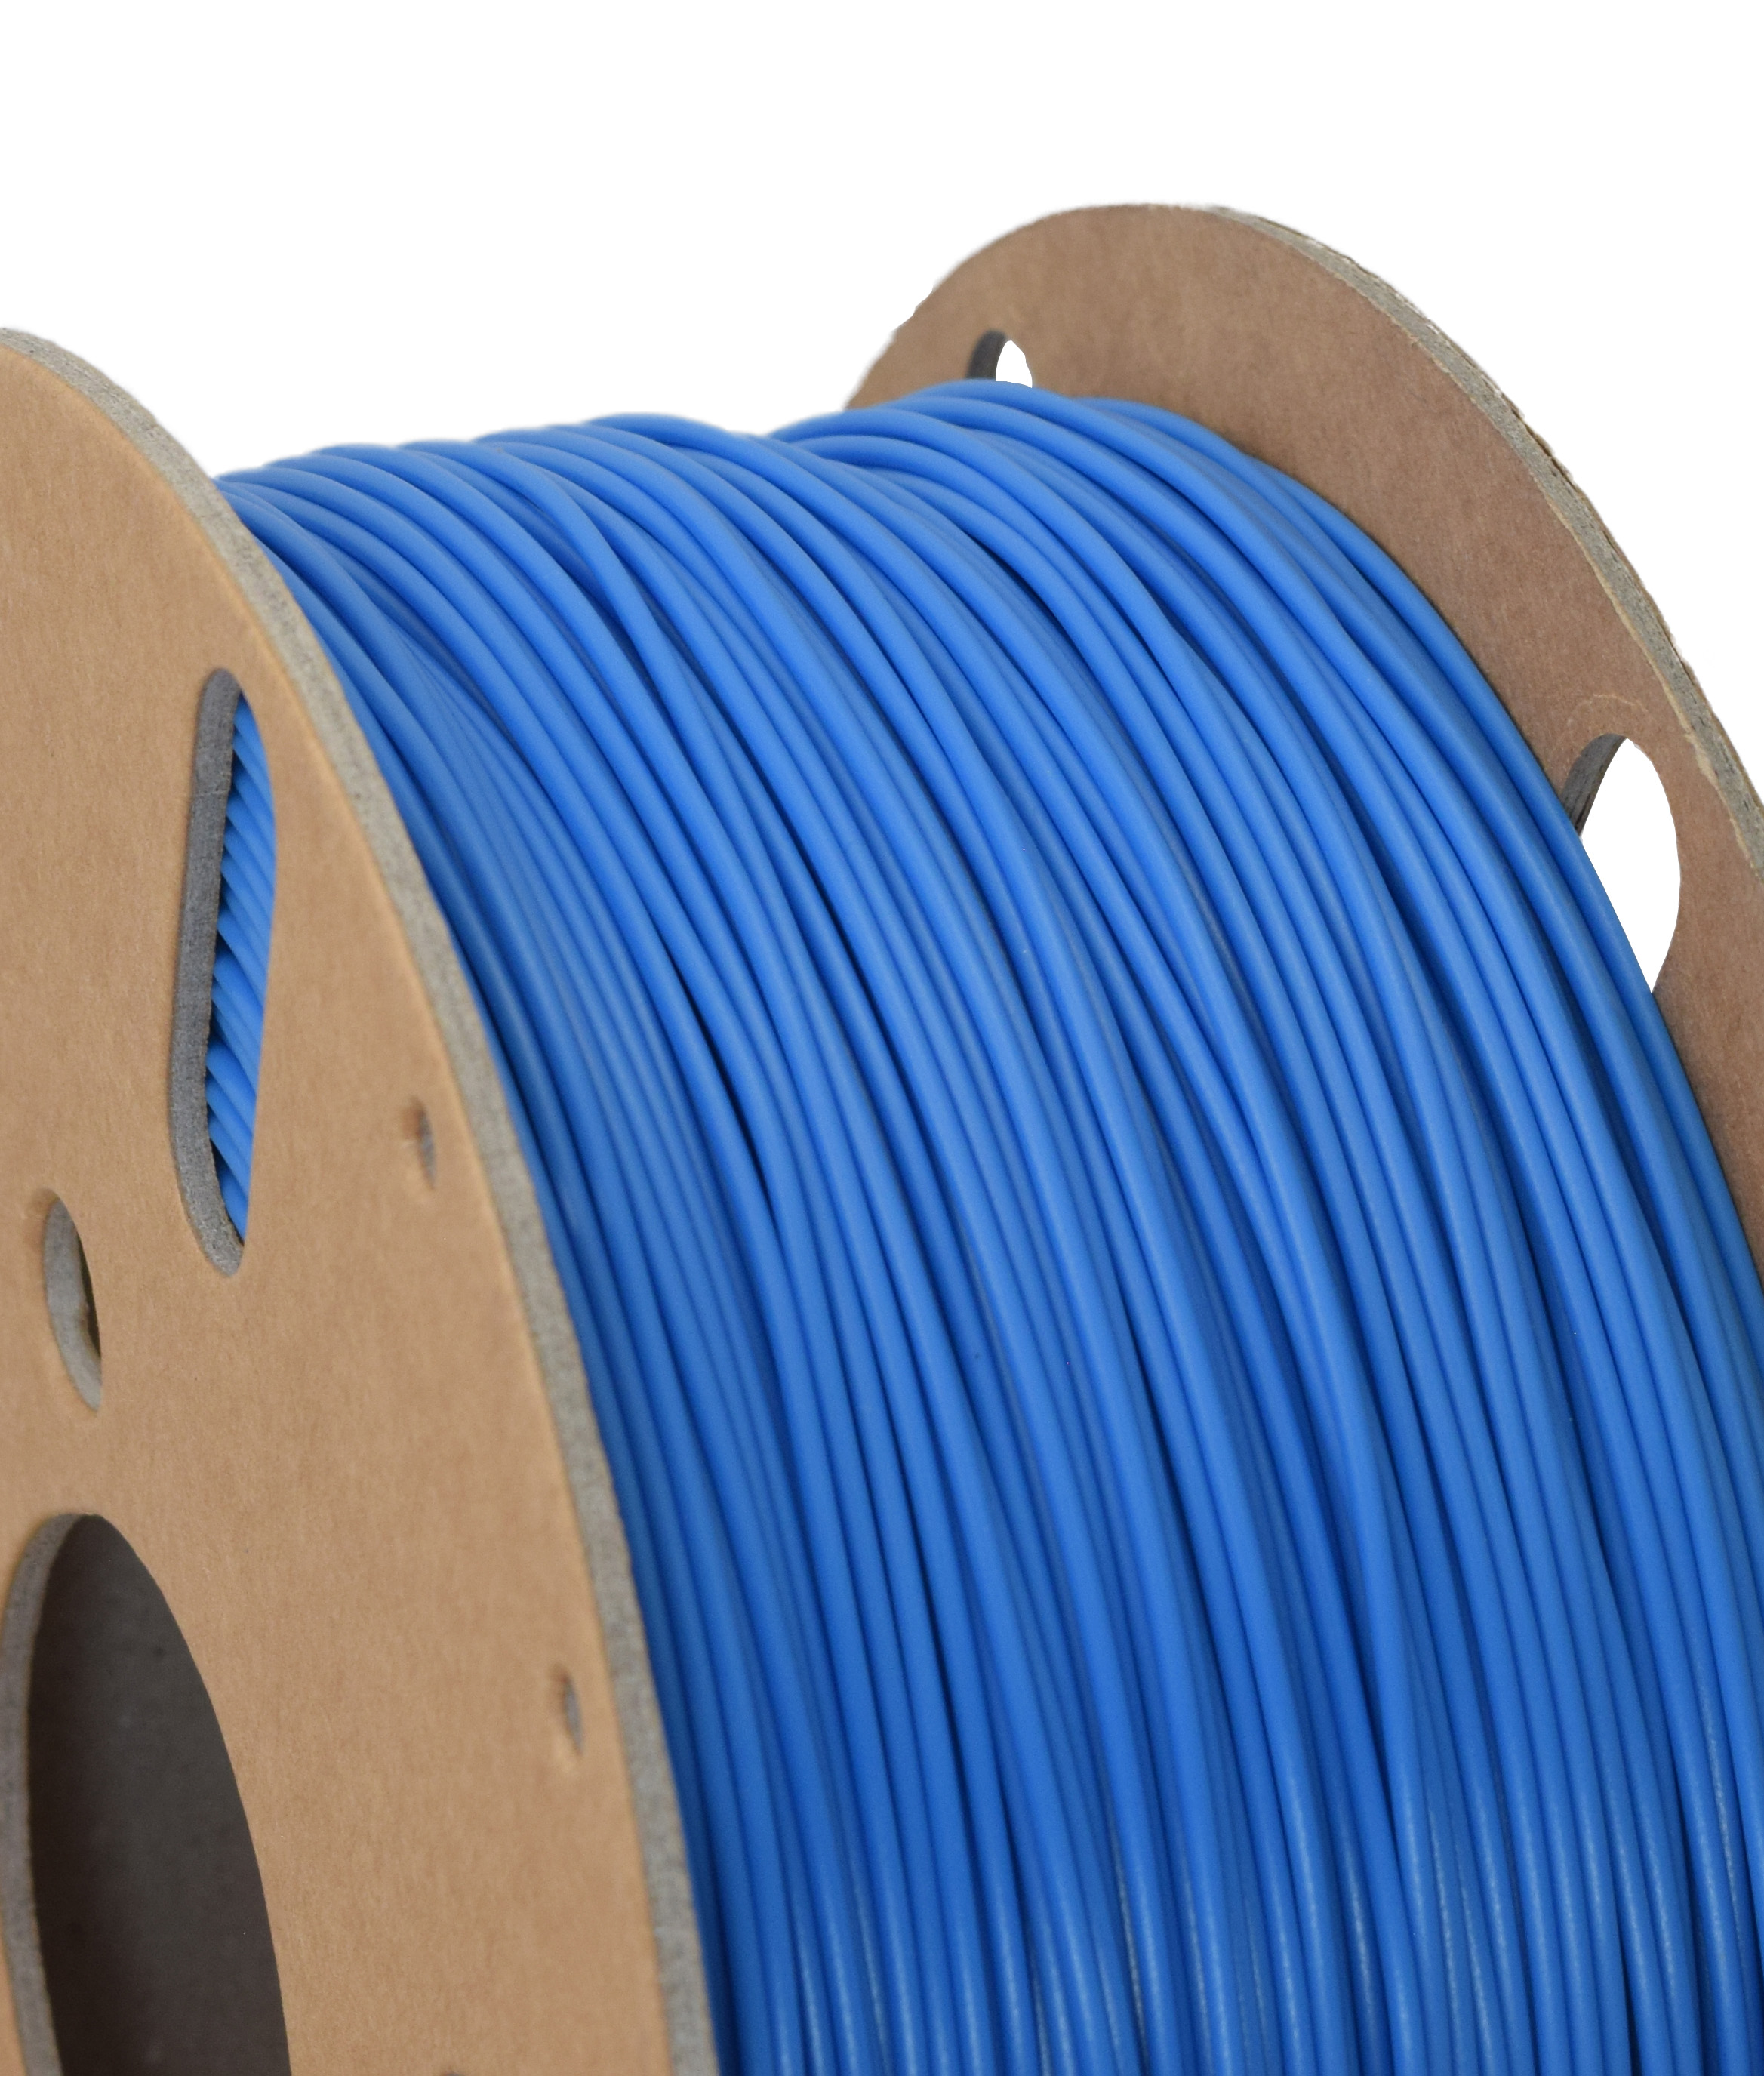 Sky Blue - 3D Printer Filament